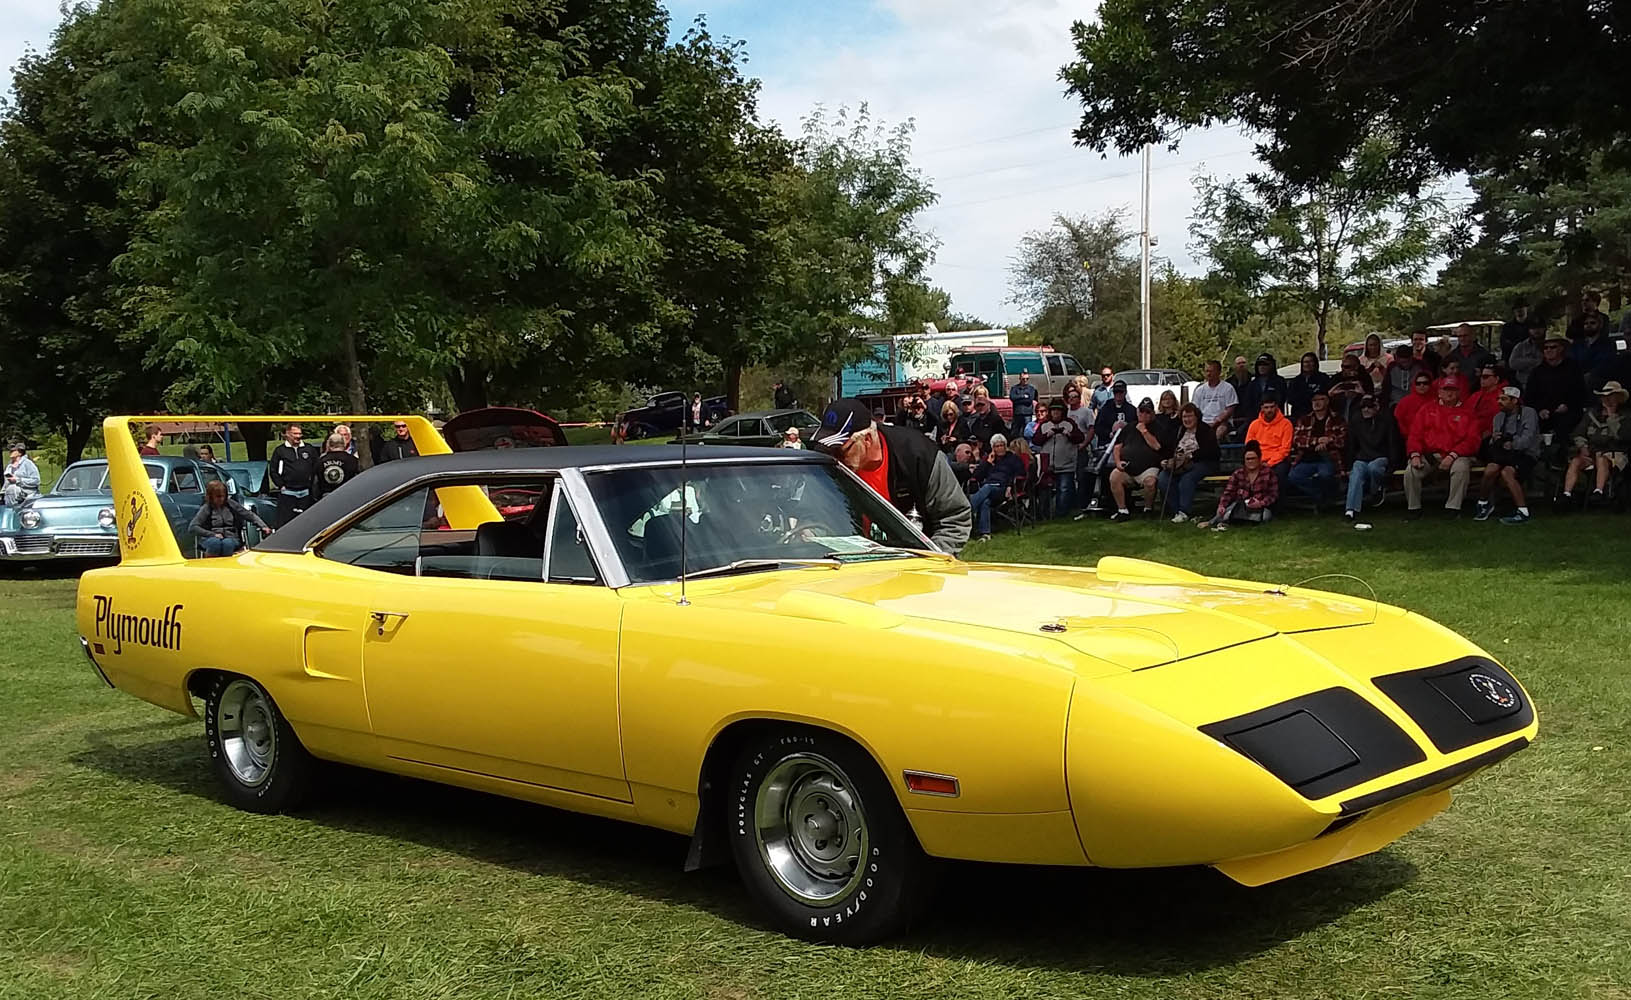 Top 25- 1970 Plymouth Super Bird, Bob Glaspie 1